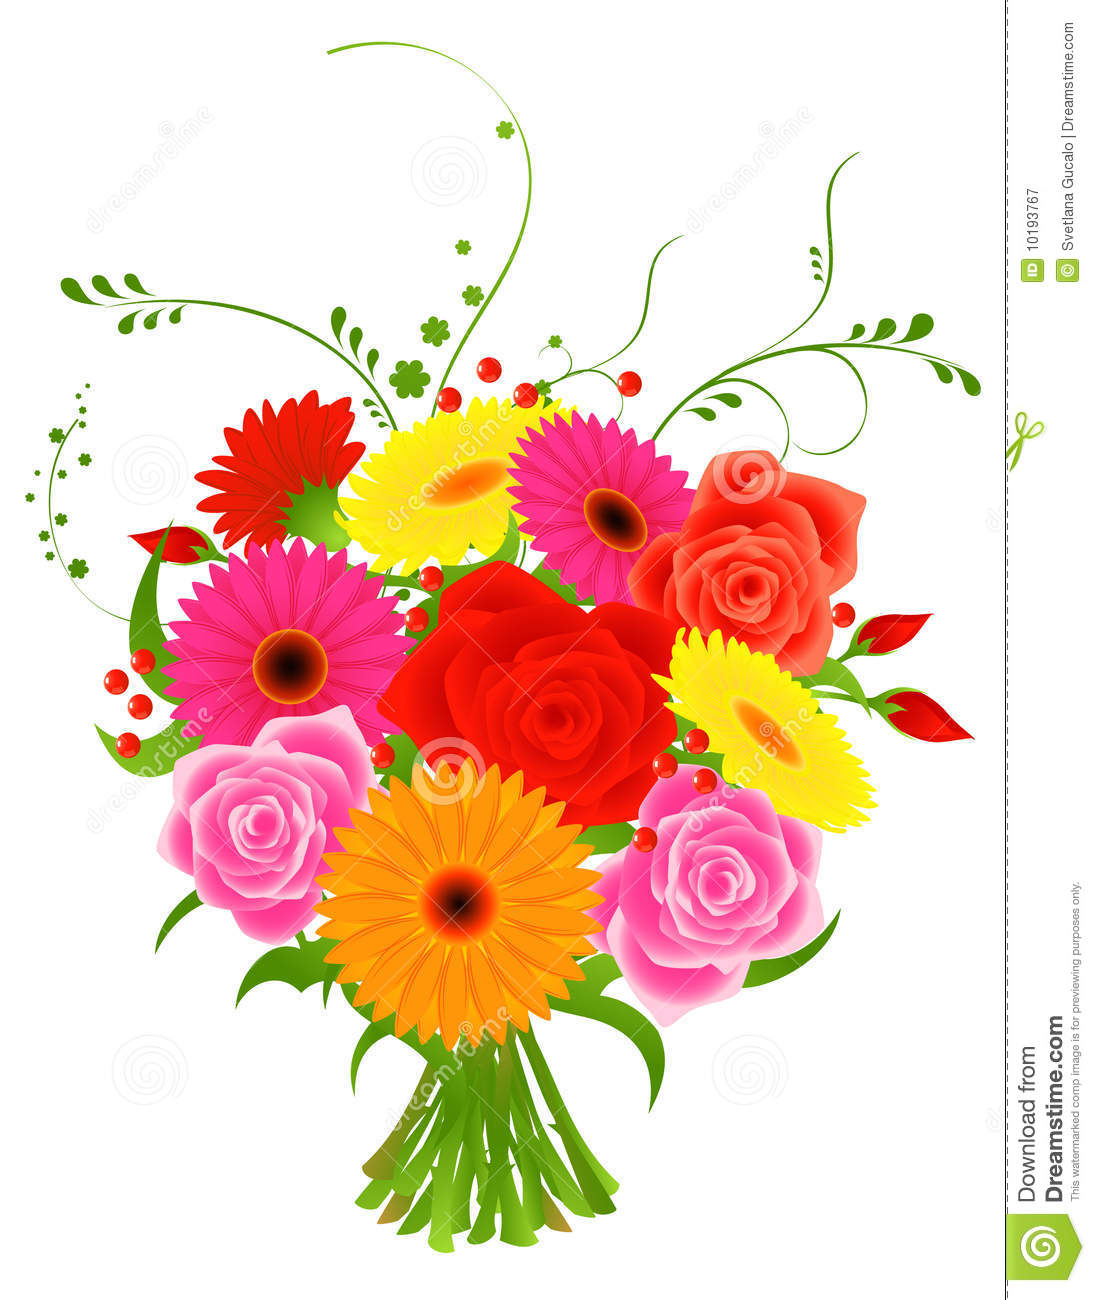 Clip art of bunch of flowers.